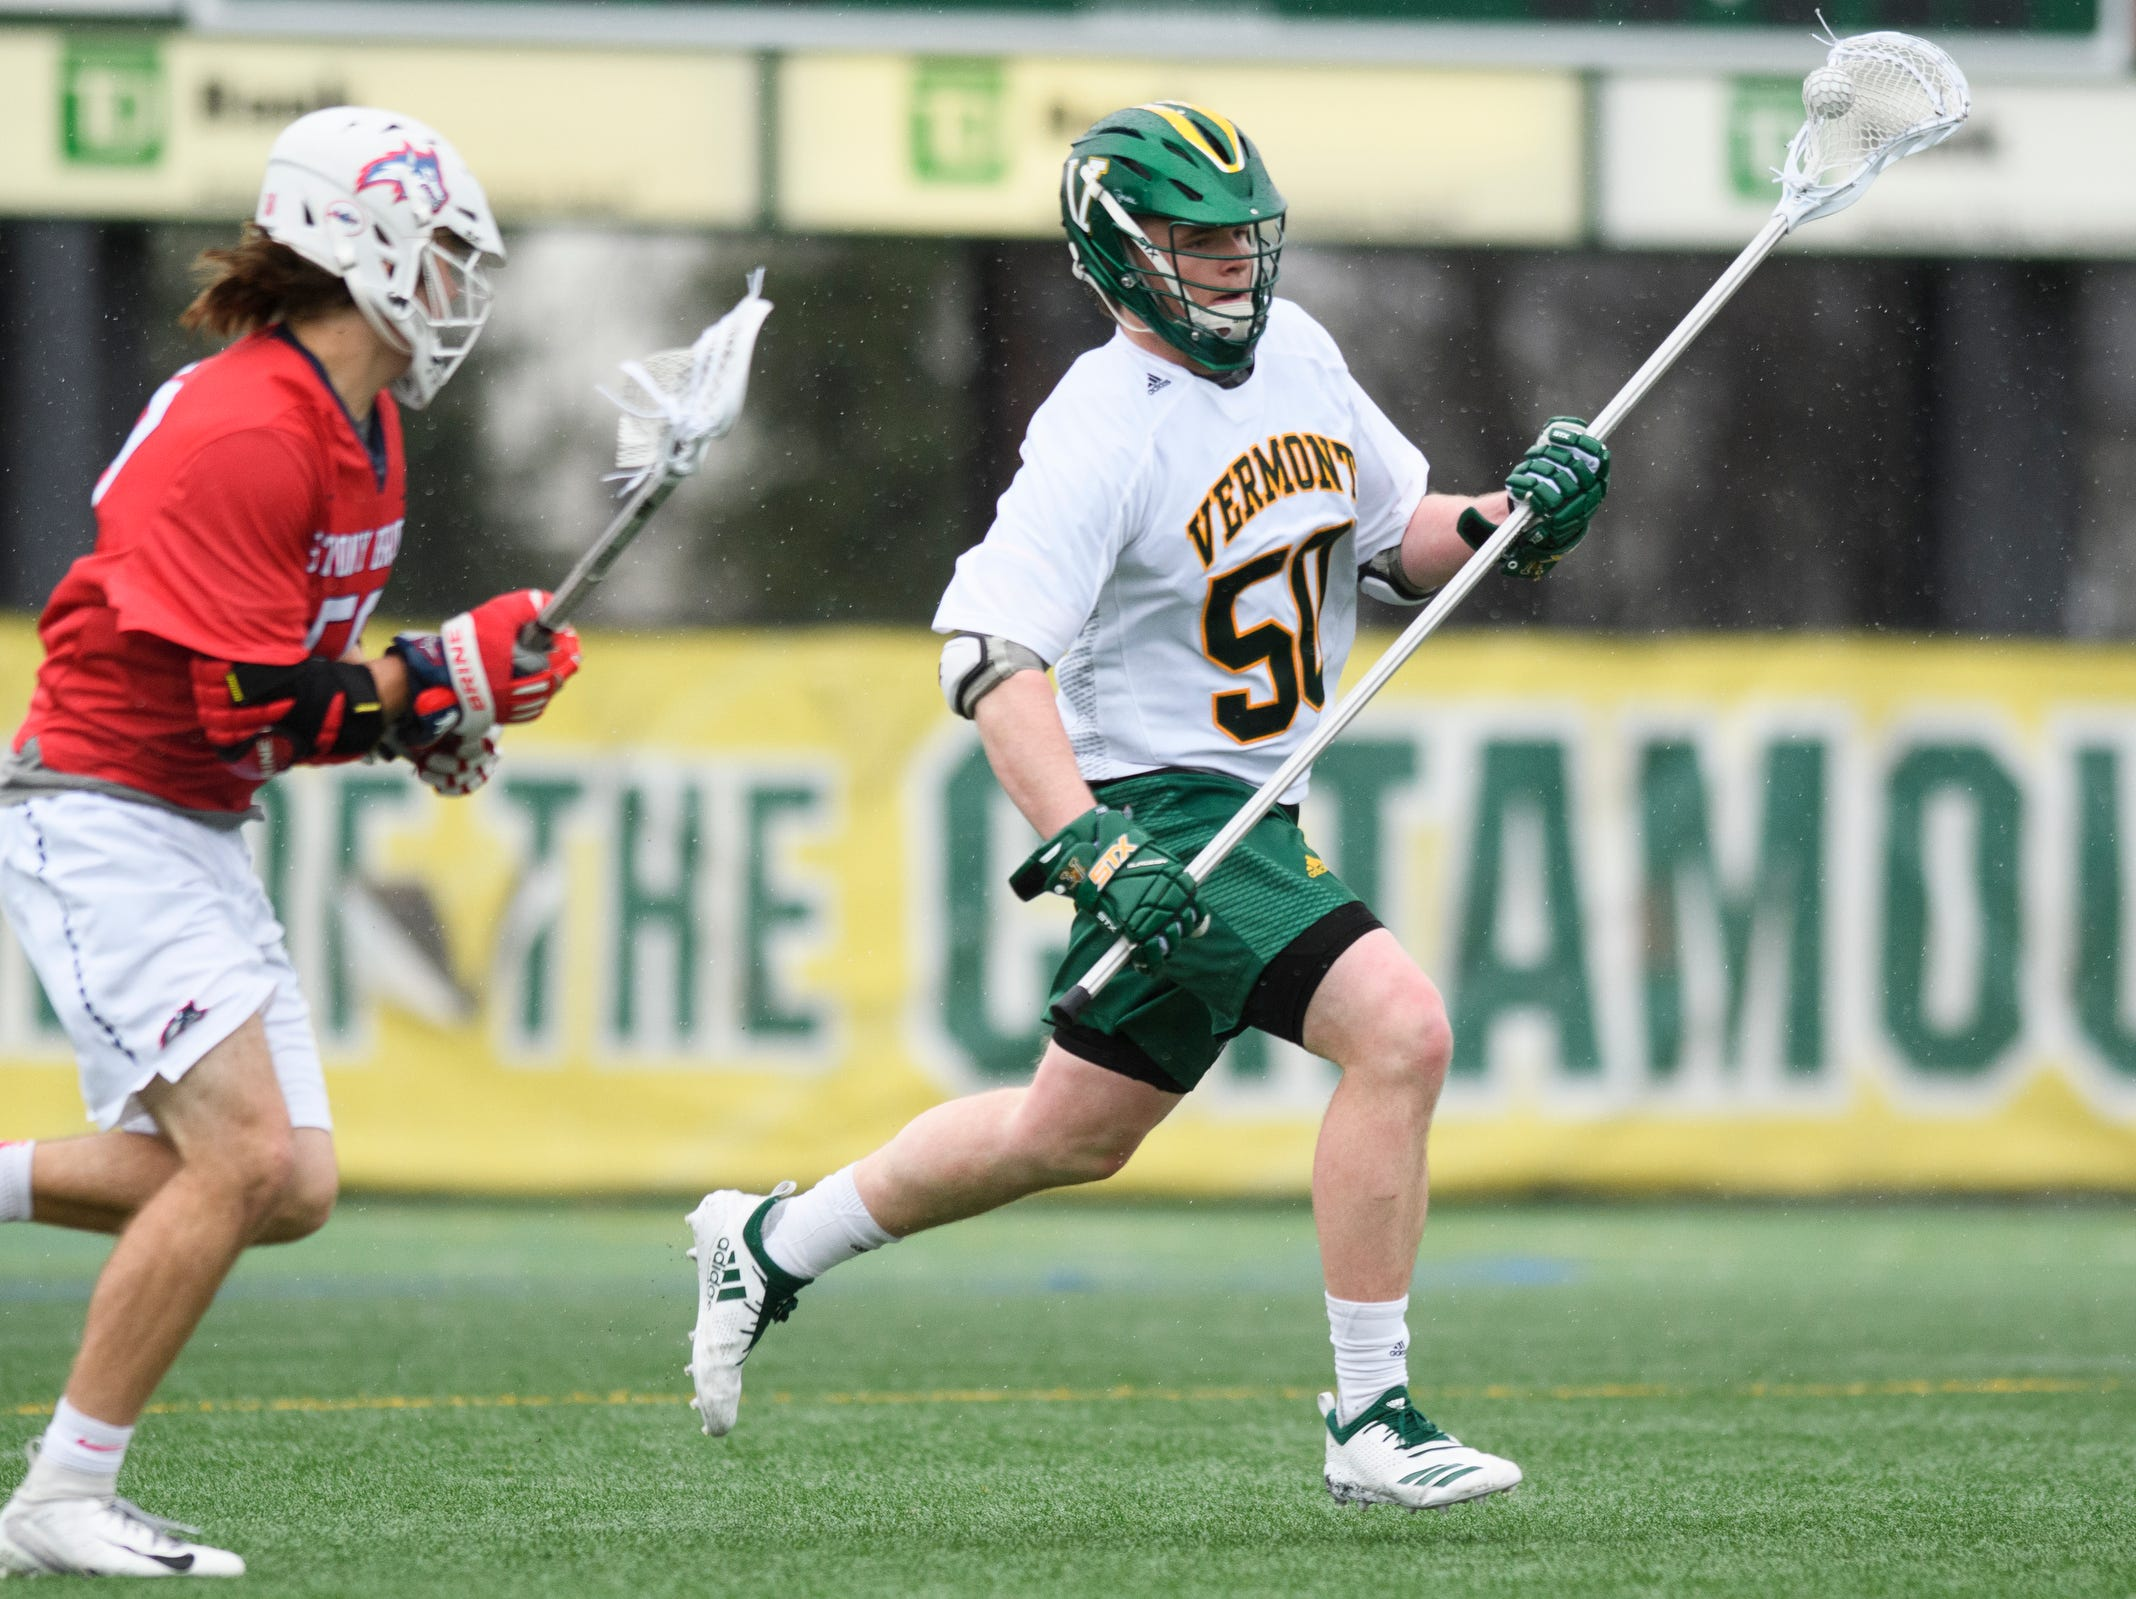 Vermont's Will Jones (50) runs down the field with the ball during the men's lacrosse game between the Stony Brook Sea Wolves and the Vermont Catamounts at Virtue Field on Saturday afternoon April 20, 2019 in Burlington, Vermont.